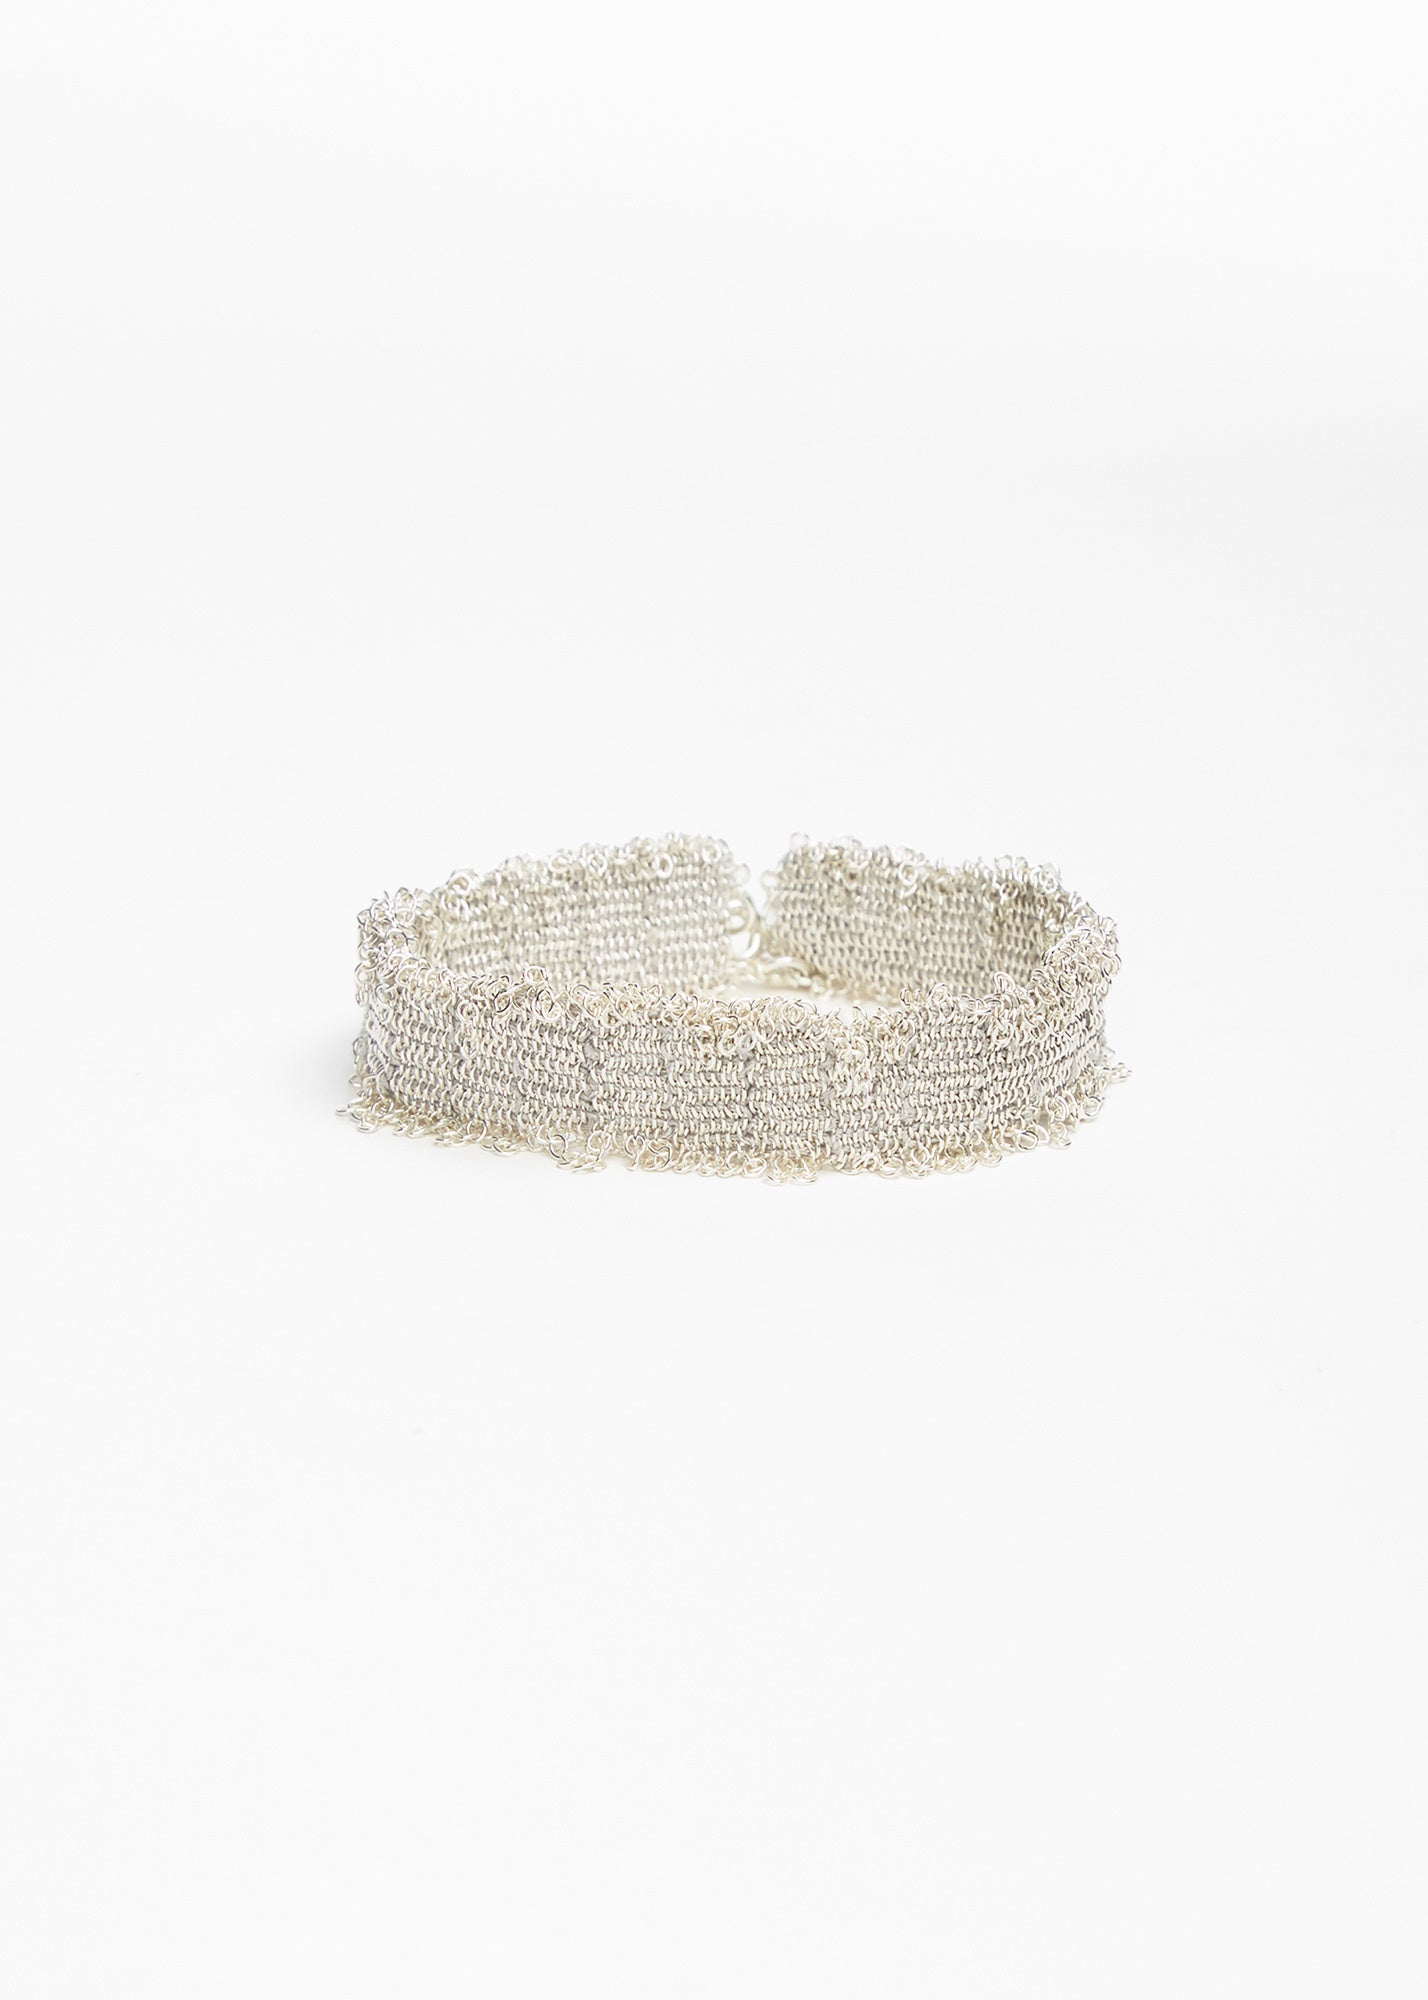 Narrow Textured Bracelet Silver/ Silk